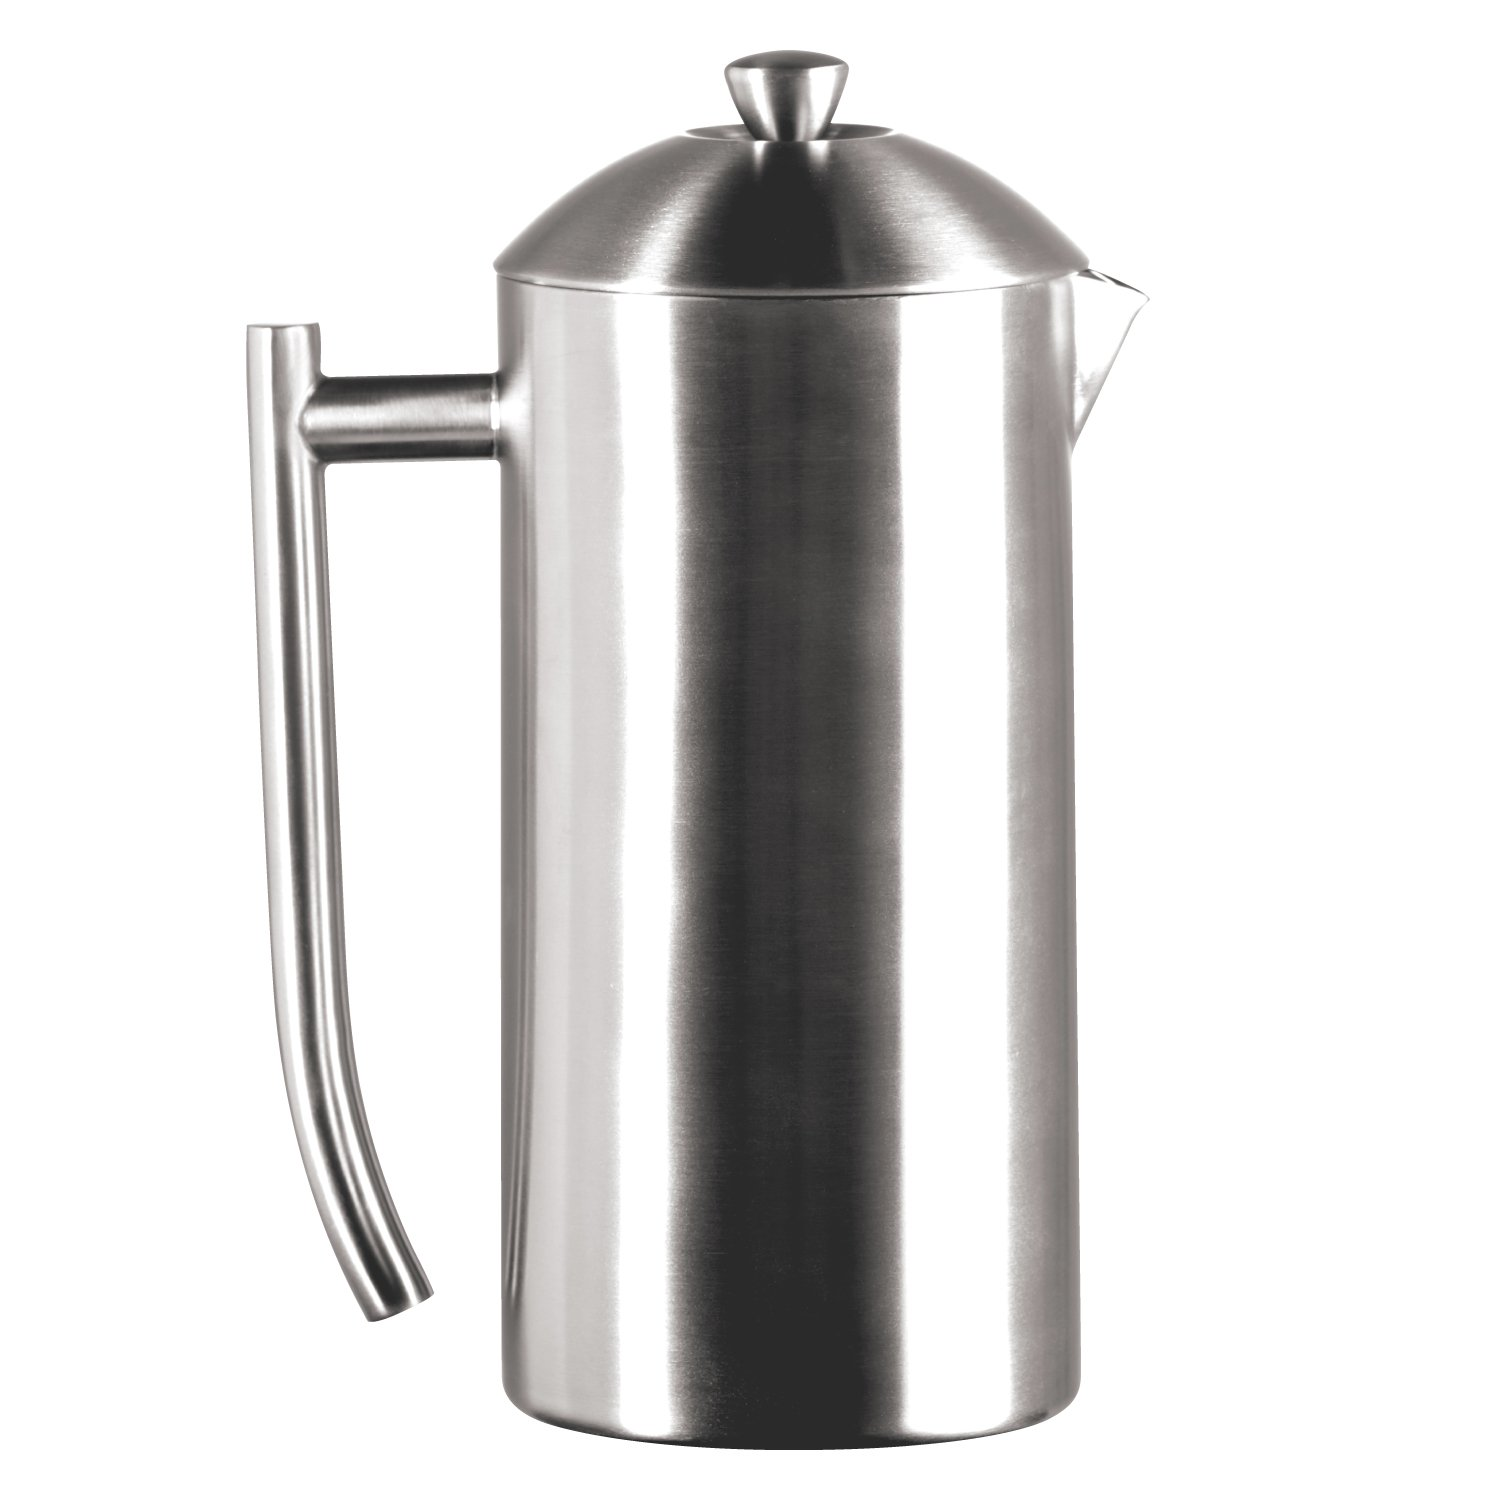 Frieling USA Double Wall Stainless Steel French Press Coffee Maker with Zero Sediment Dual Screen, Brushed, 36-Ounce